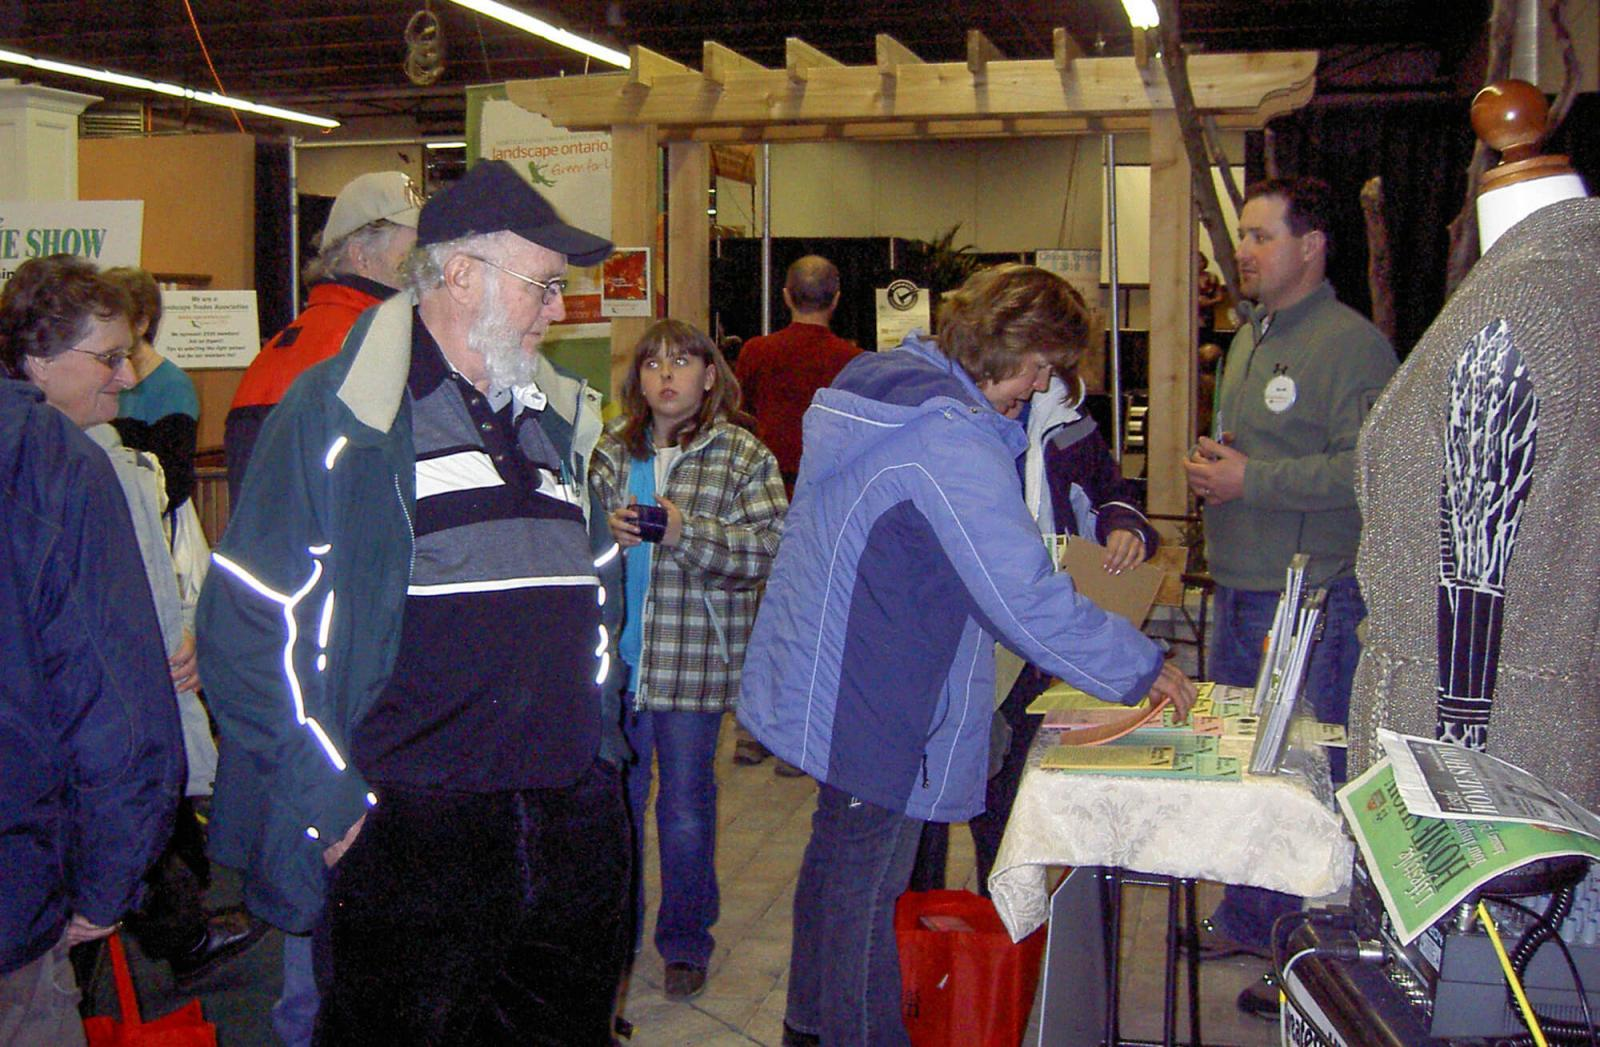 The London Chapter had great success attracting attention at the annual home show.